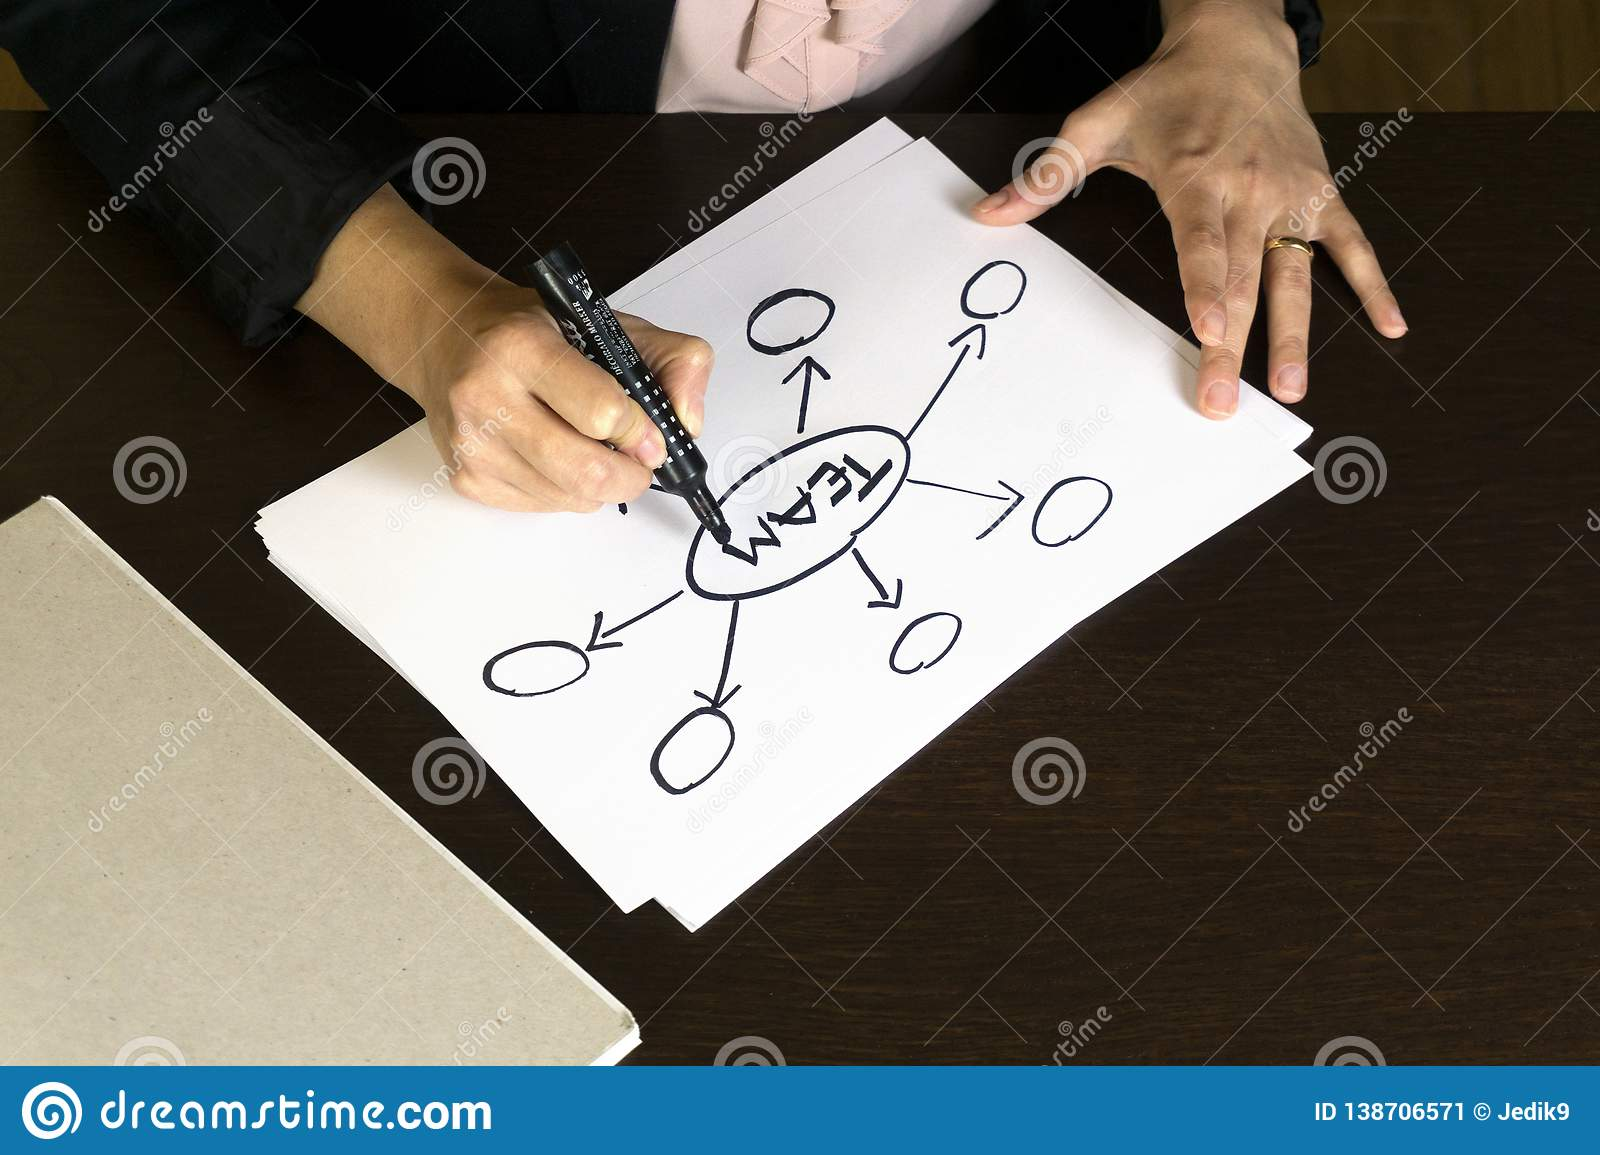 Business Woman Writing Action Plan Diagram Concept for team